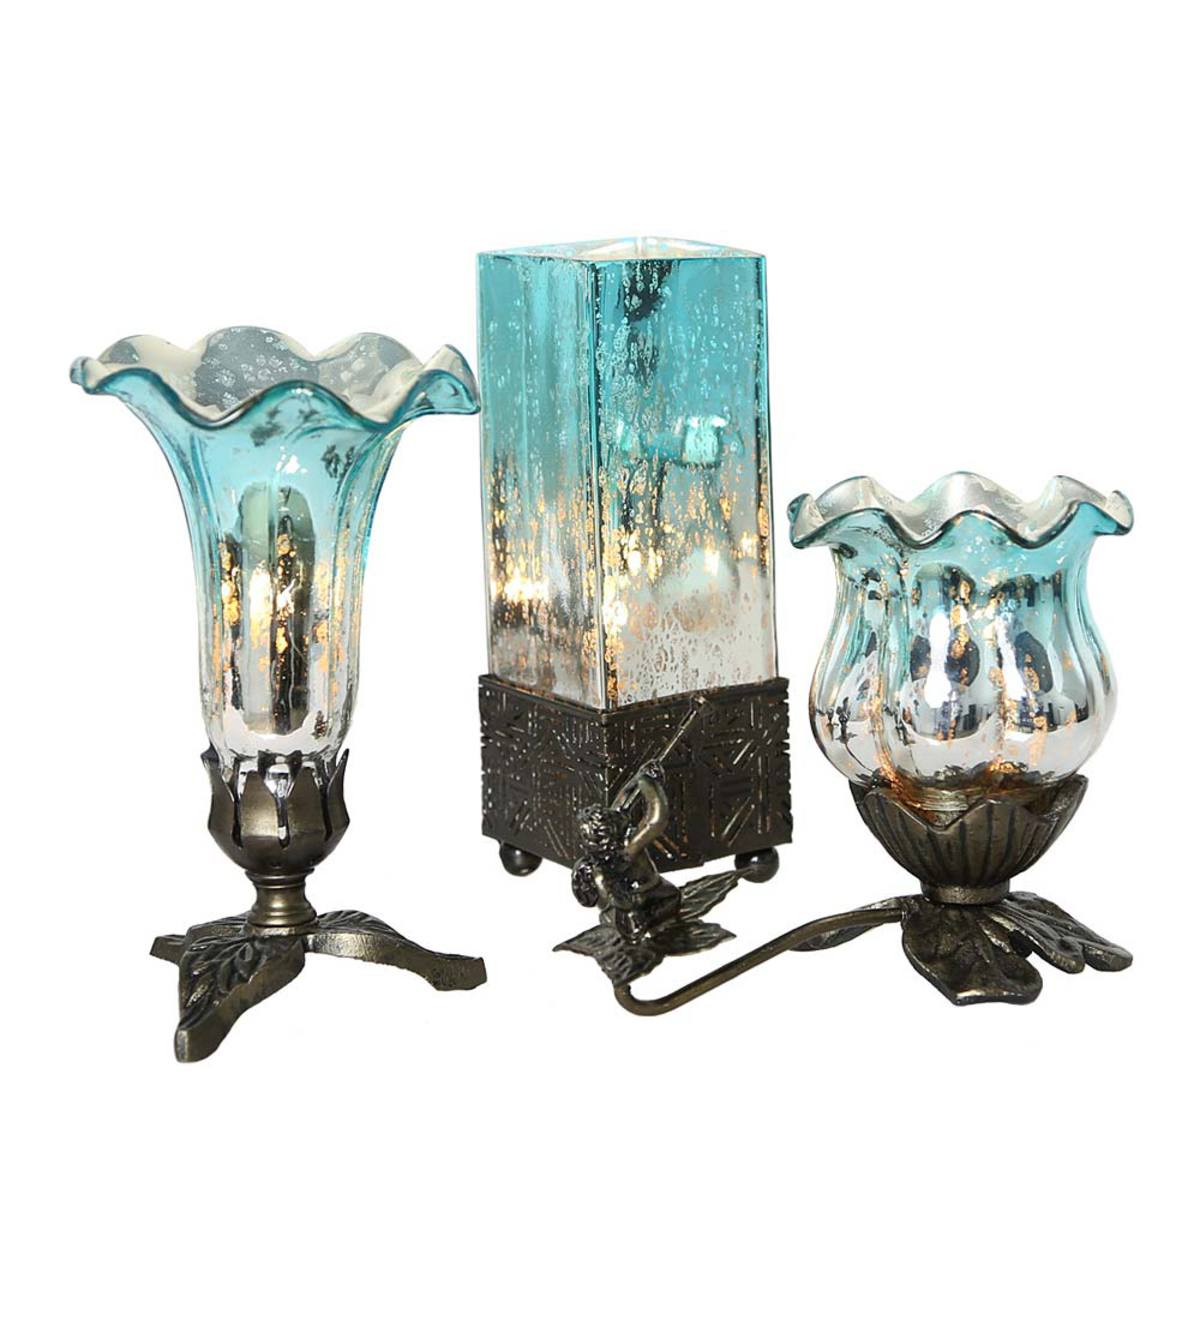 Mercury Glass Accent Lamps, Set of 3 - Teal/Silver